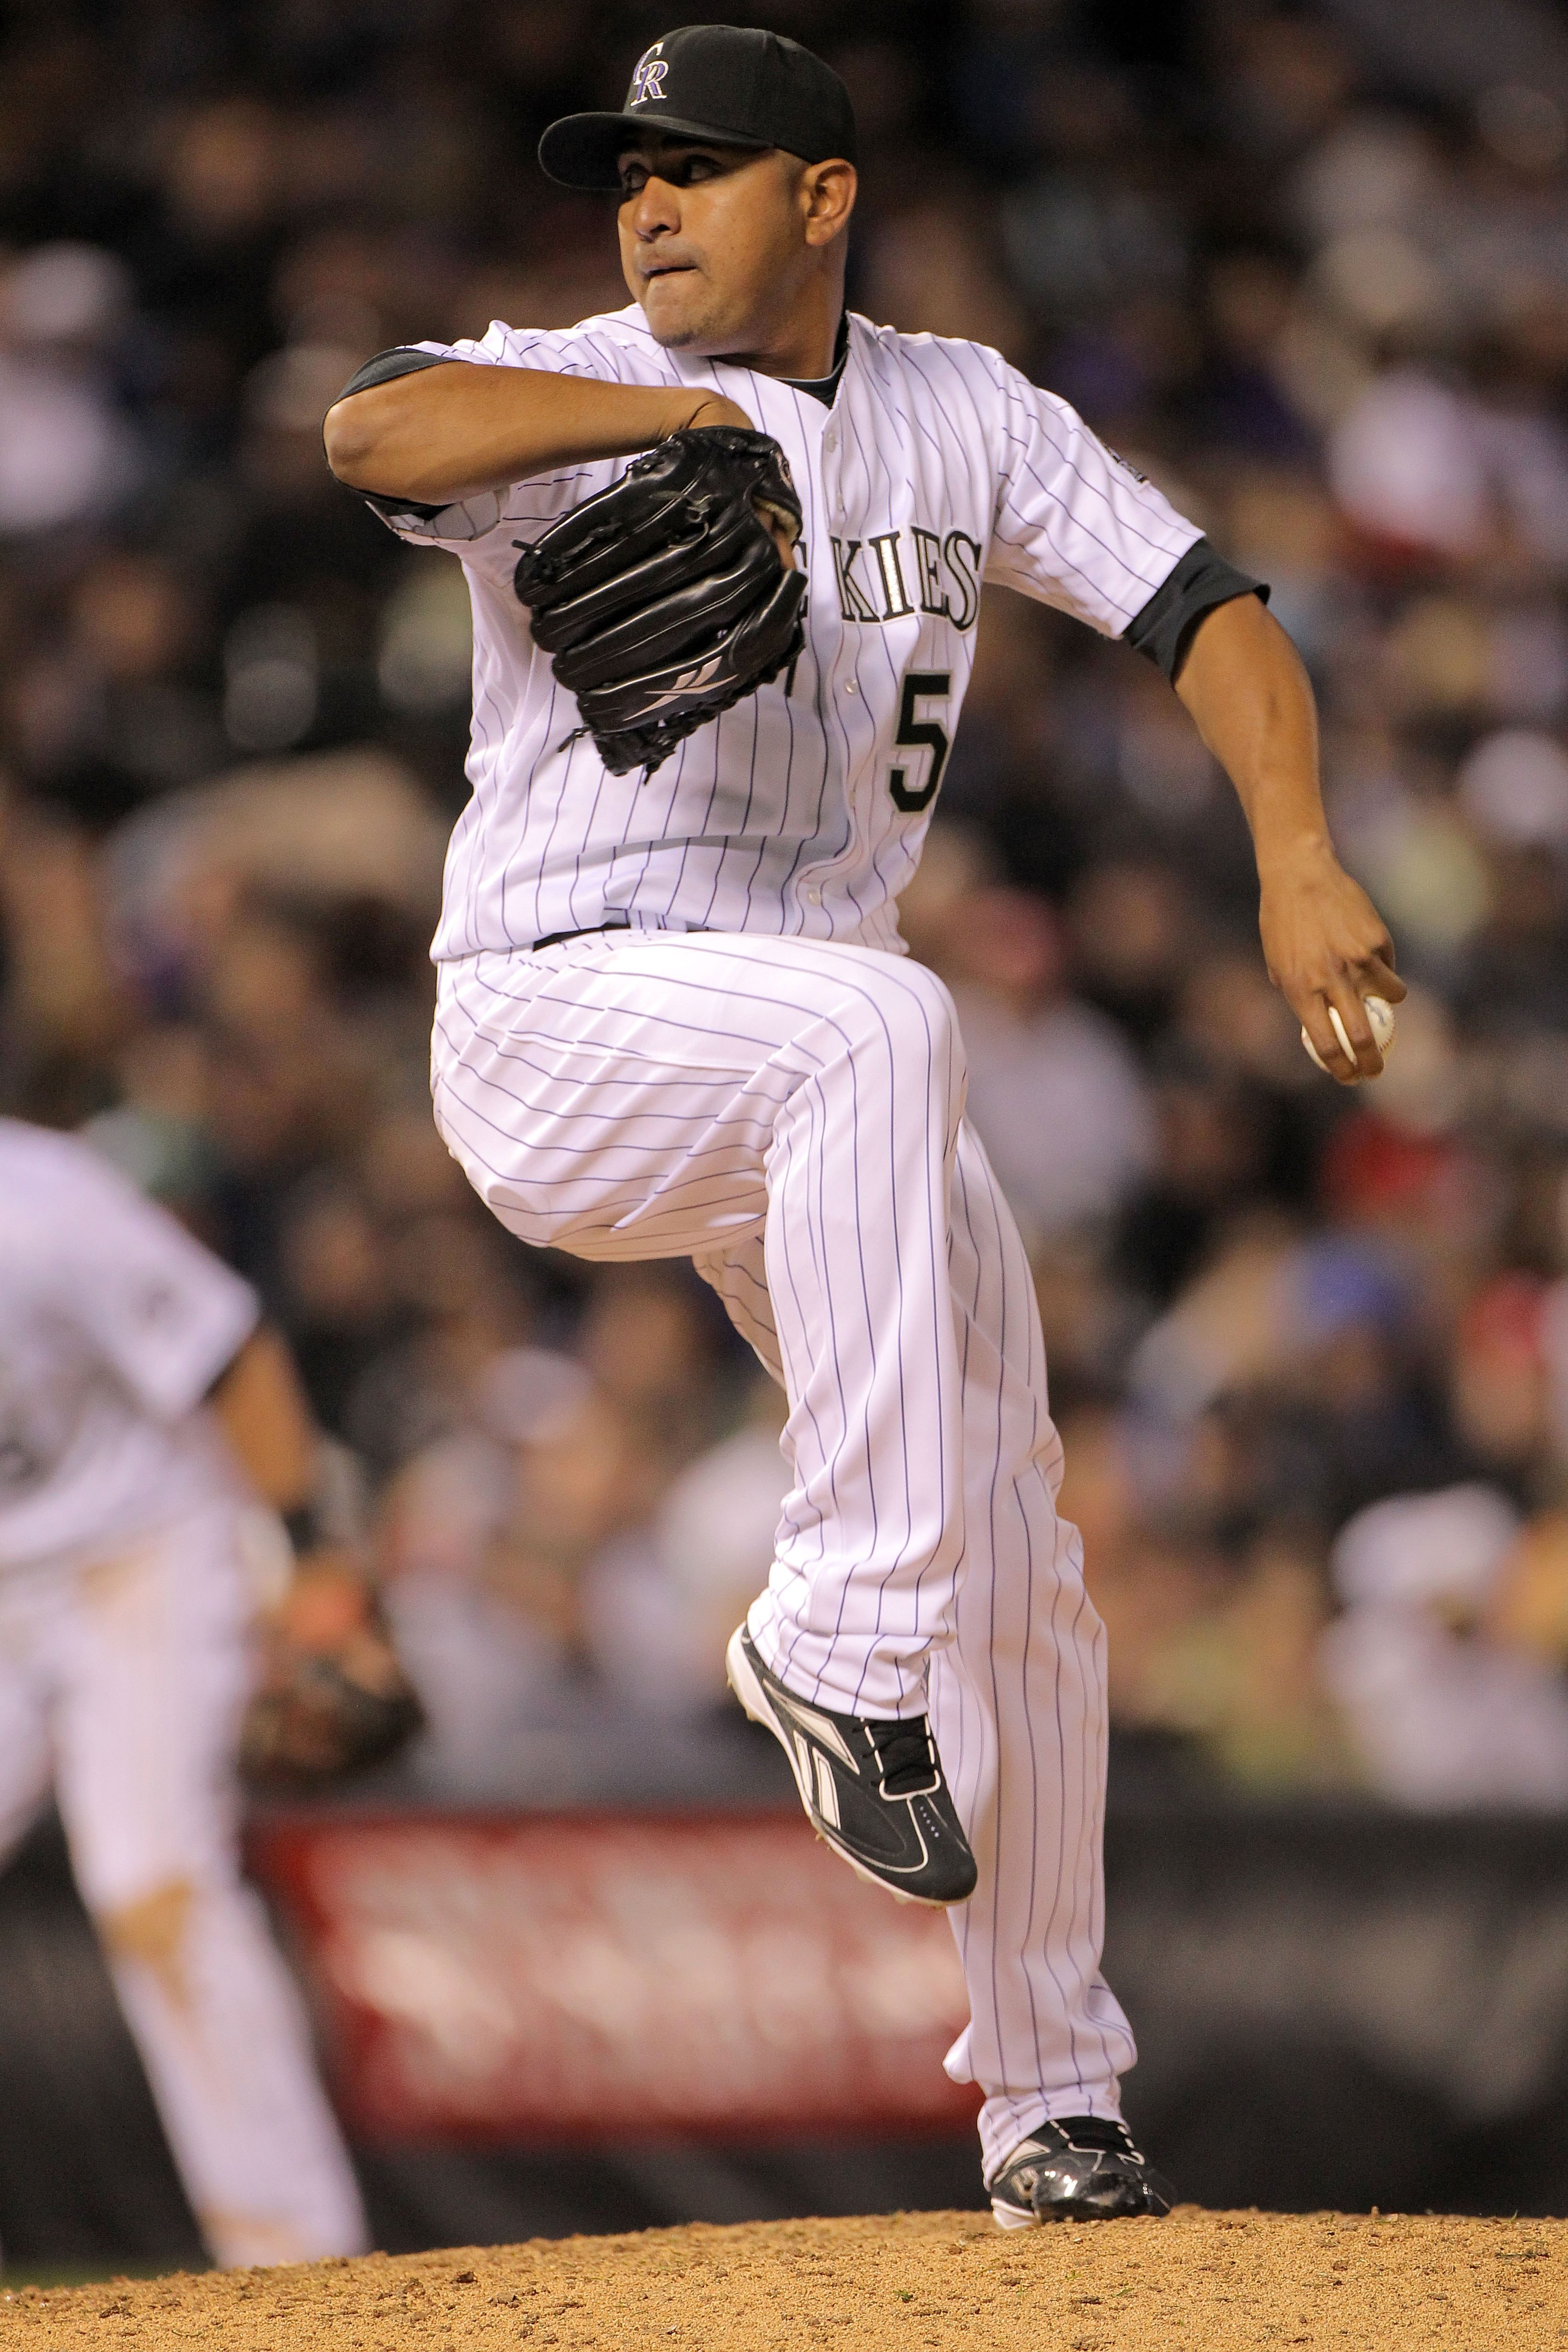 DENVER - APRIL 10:  Relief pitcher Franklin Morales #56 of the Colorado Rockies delivers against the San Diego Padres during MLB action at Coors Field on April 10, 2010 in Denver, Colorado. The Padres defeated the Rockies 5-4 in 14 innings.  (Photo by Dou